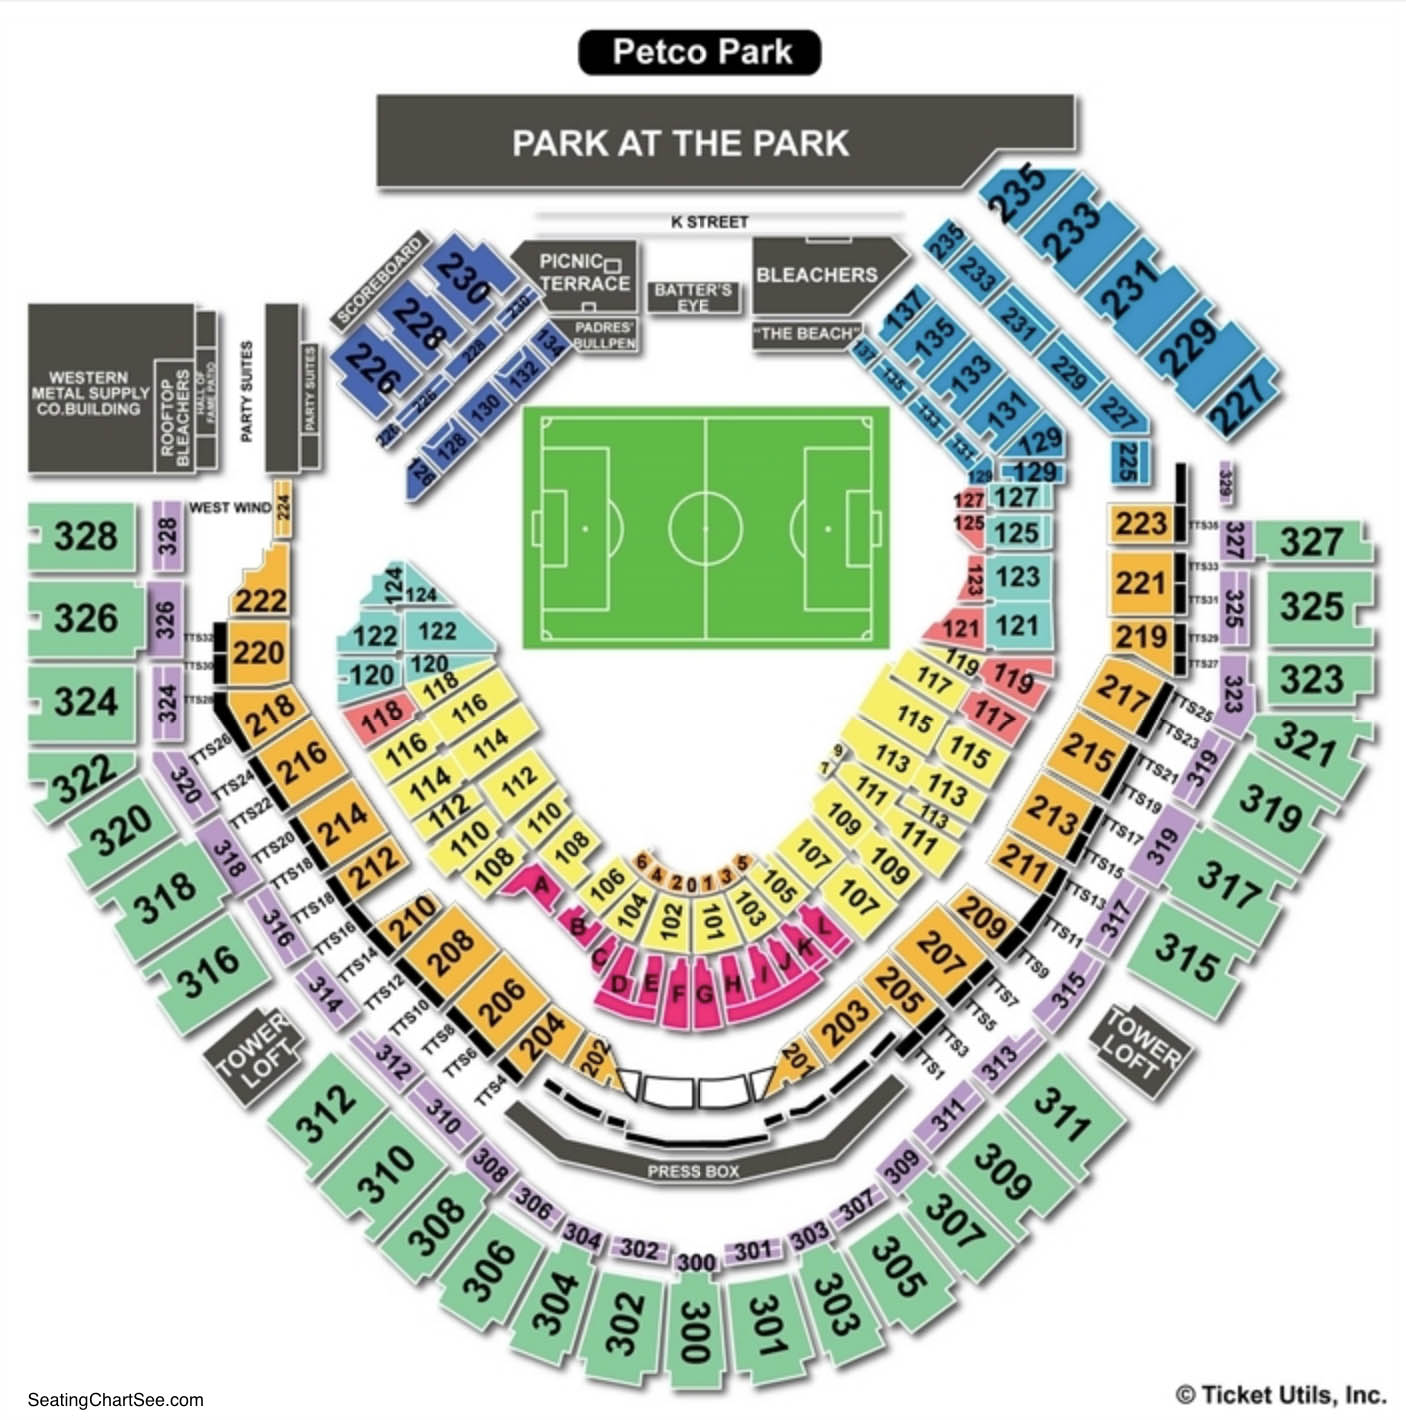 Petco Park Soccer Seating Chart